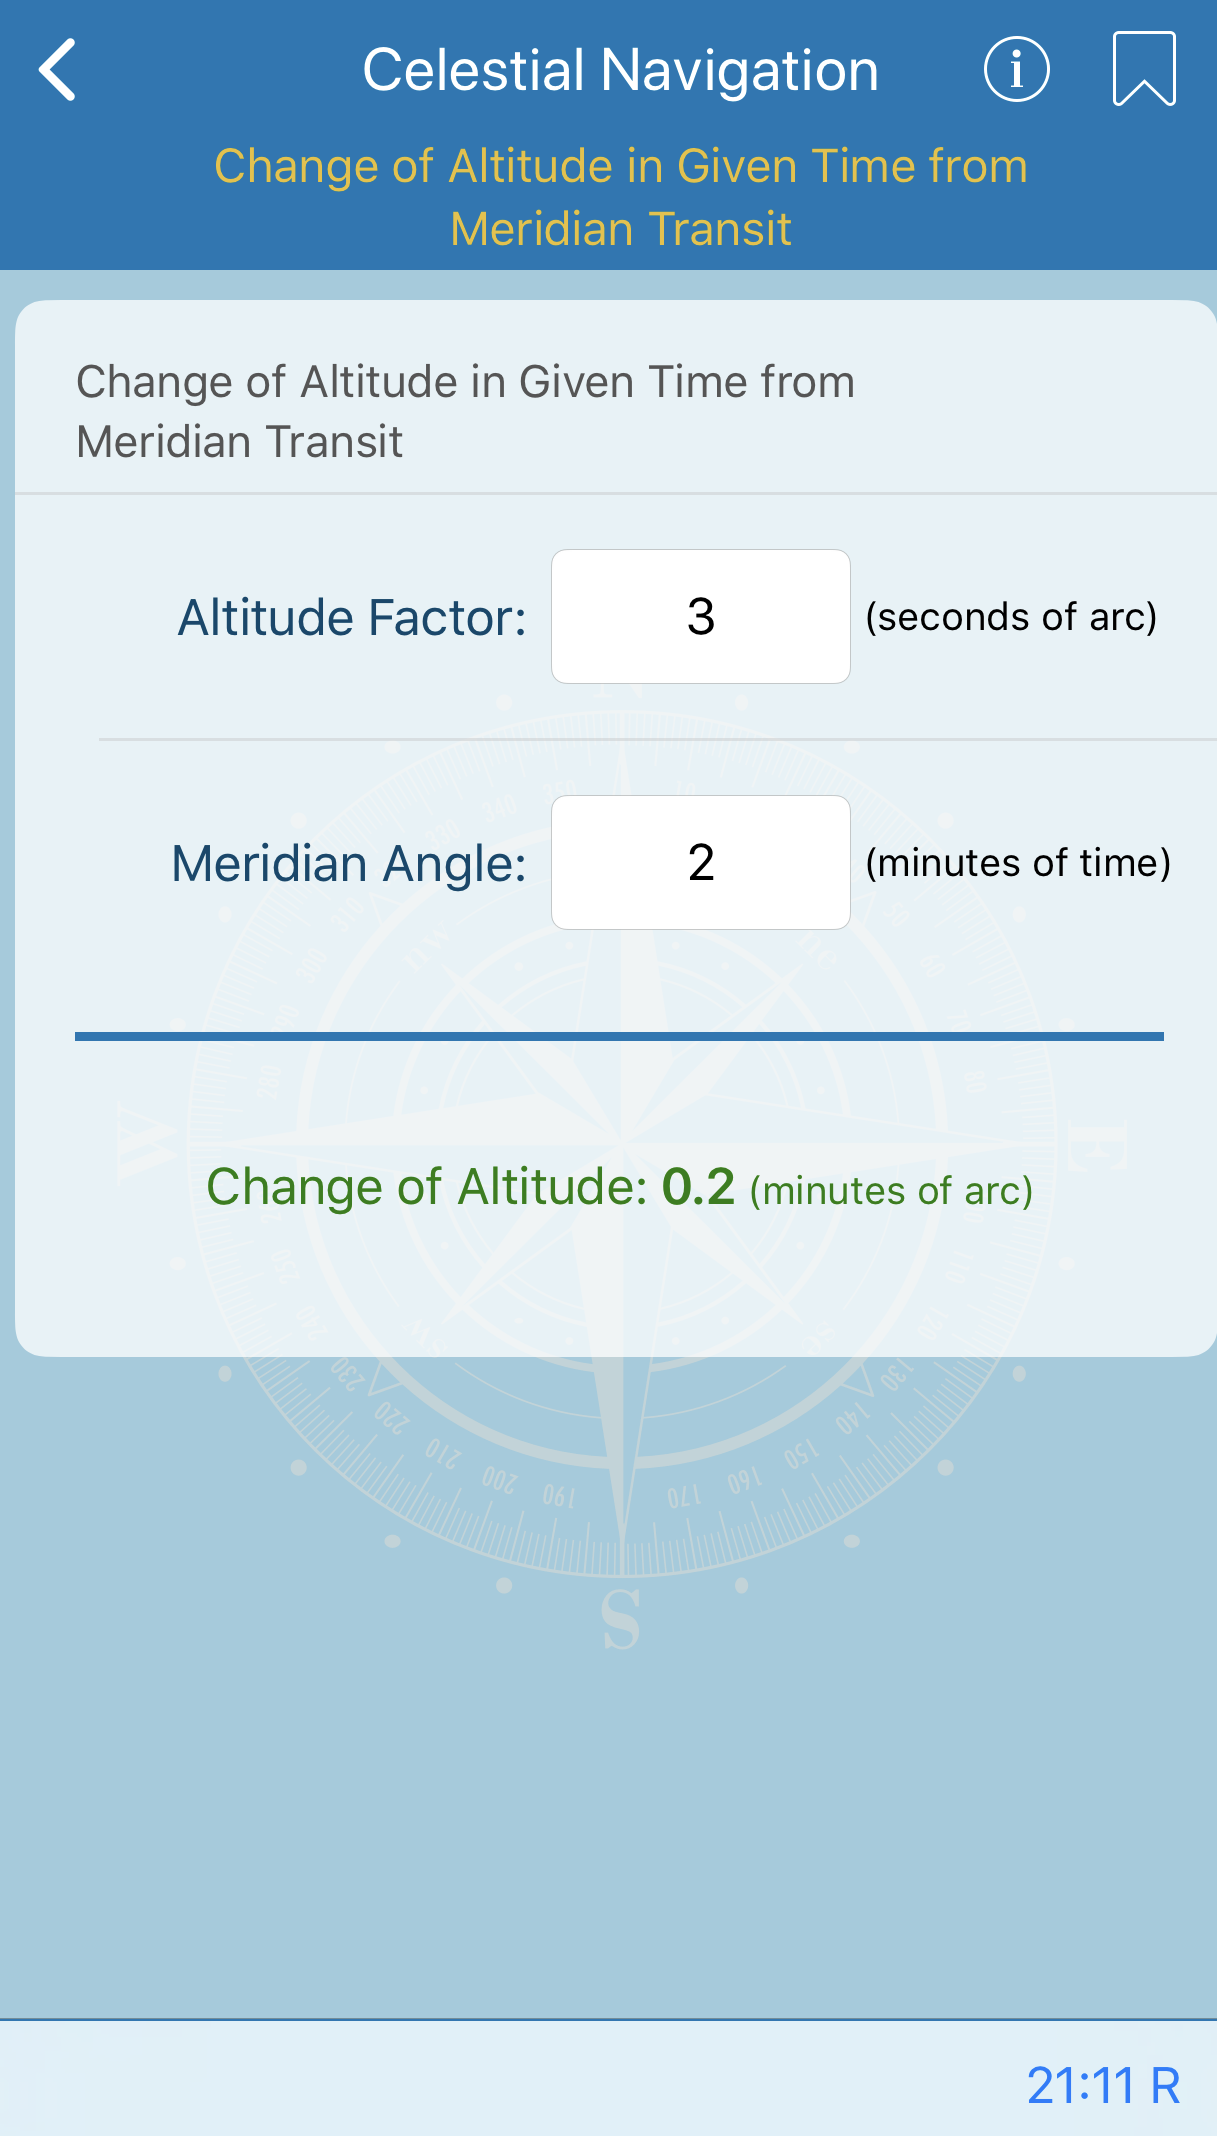 Change of Altitude in Given Time from Meridian Transit